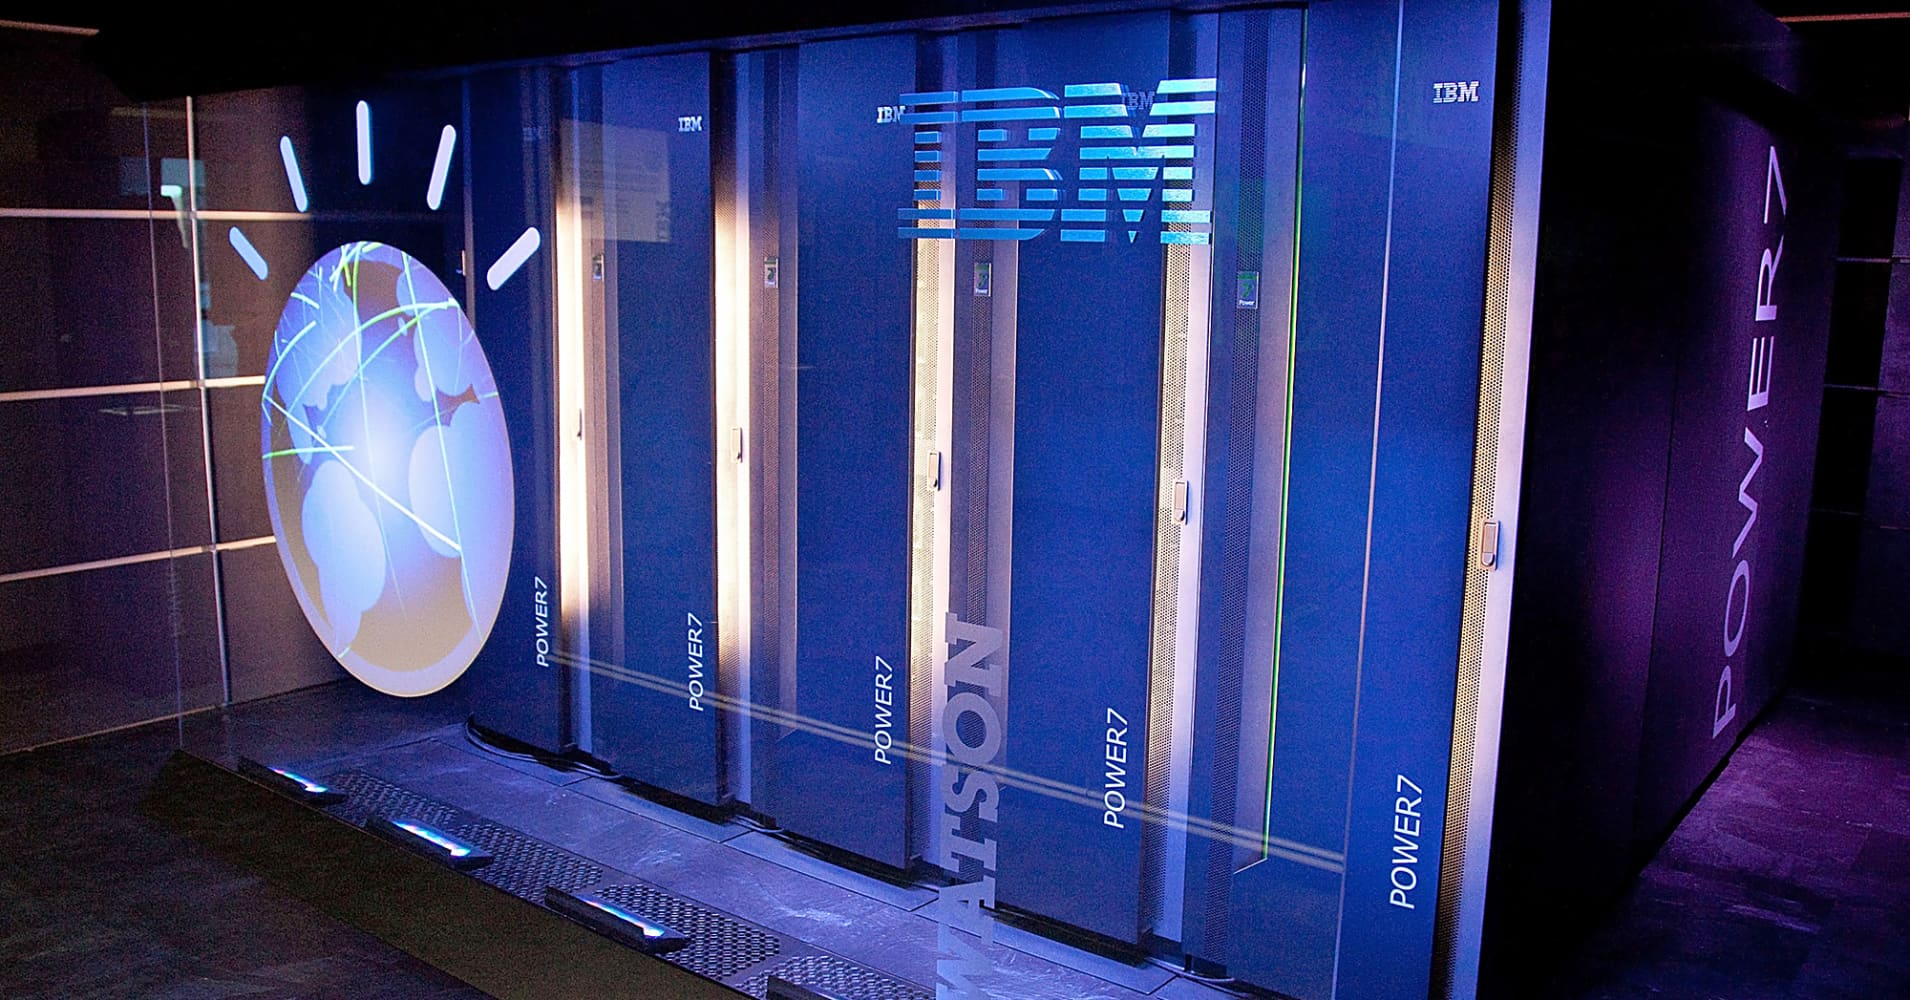 IBM's Watson 'is a joke,' says Social Capital CEO Palihapitiya